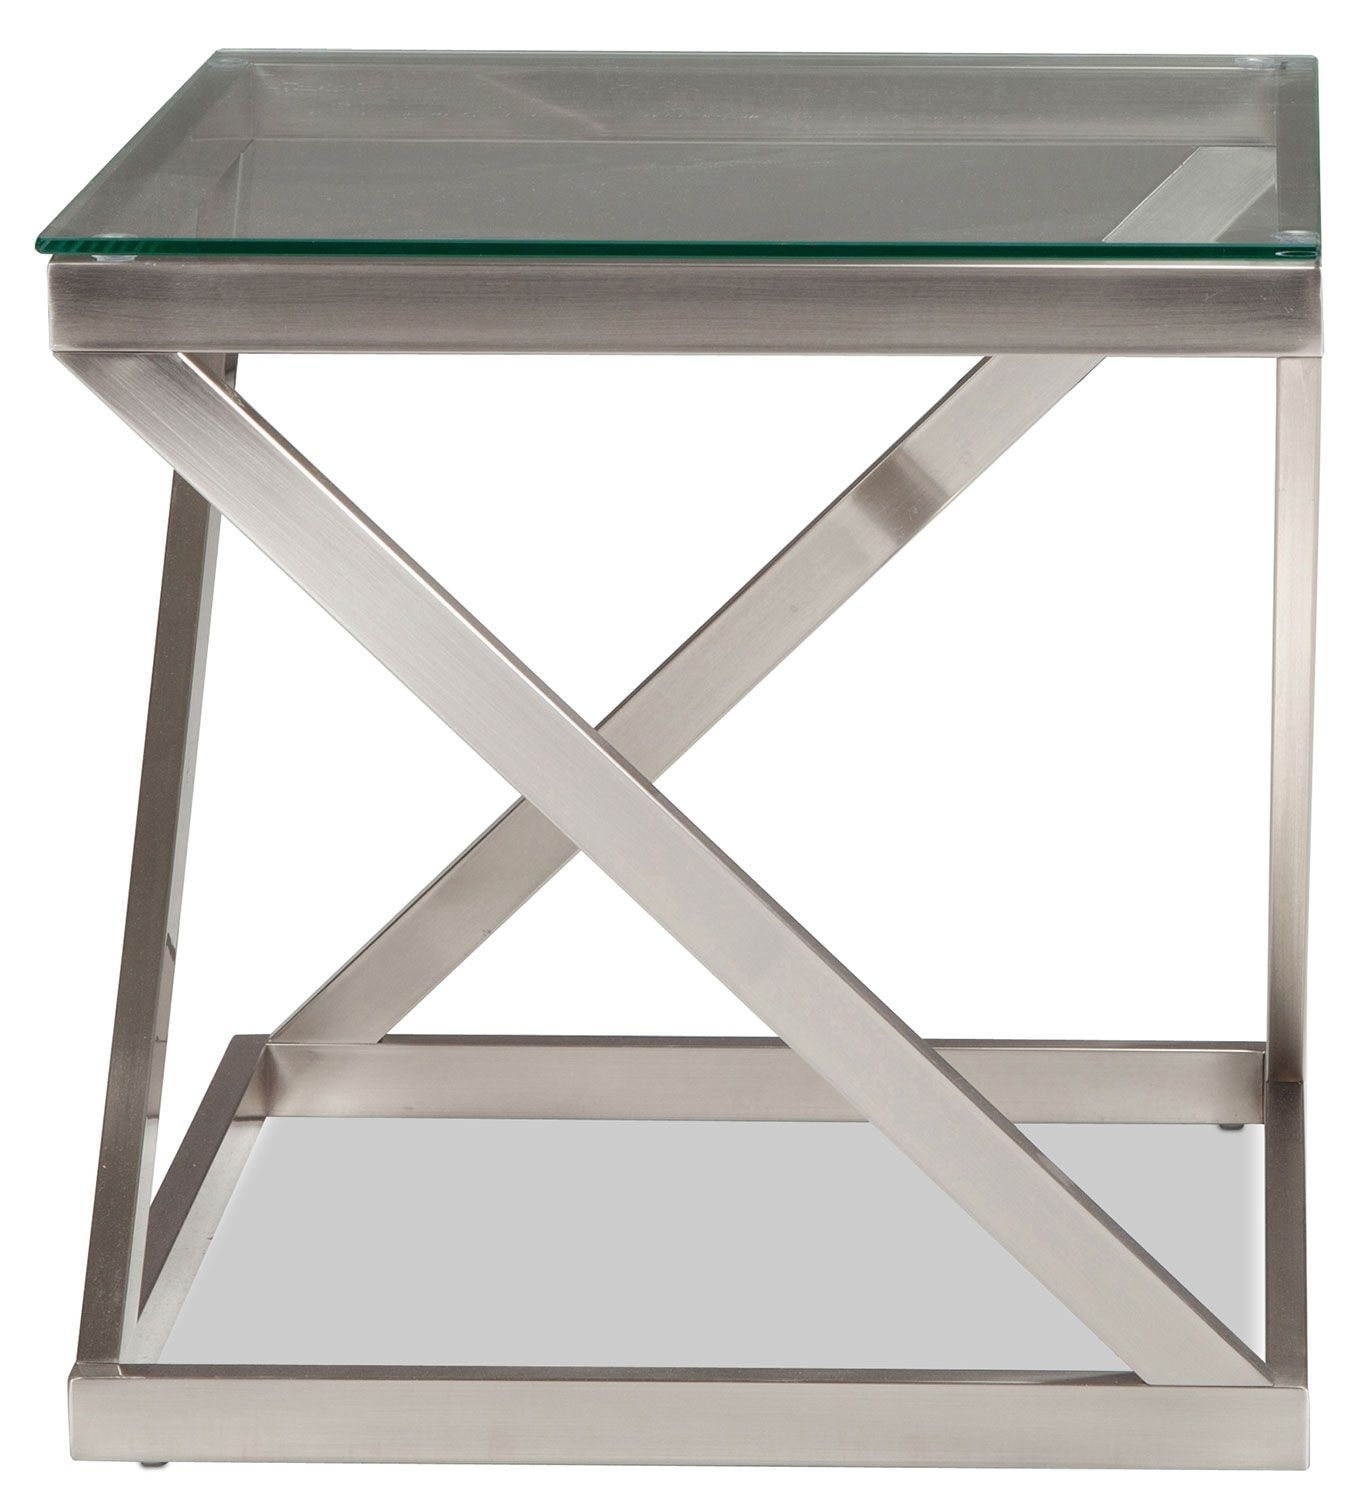 La Vista End Table - Brushed Nickel